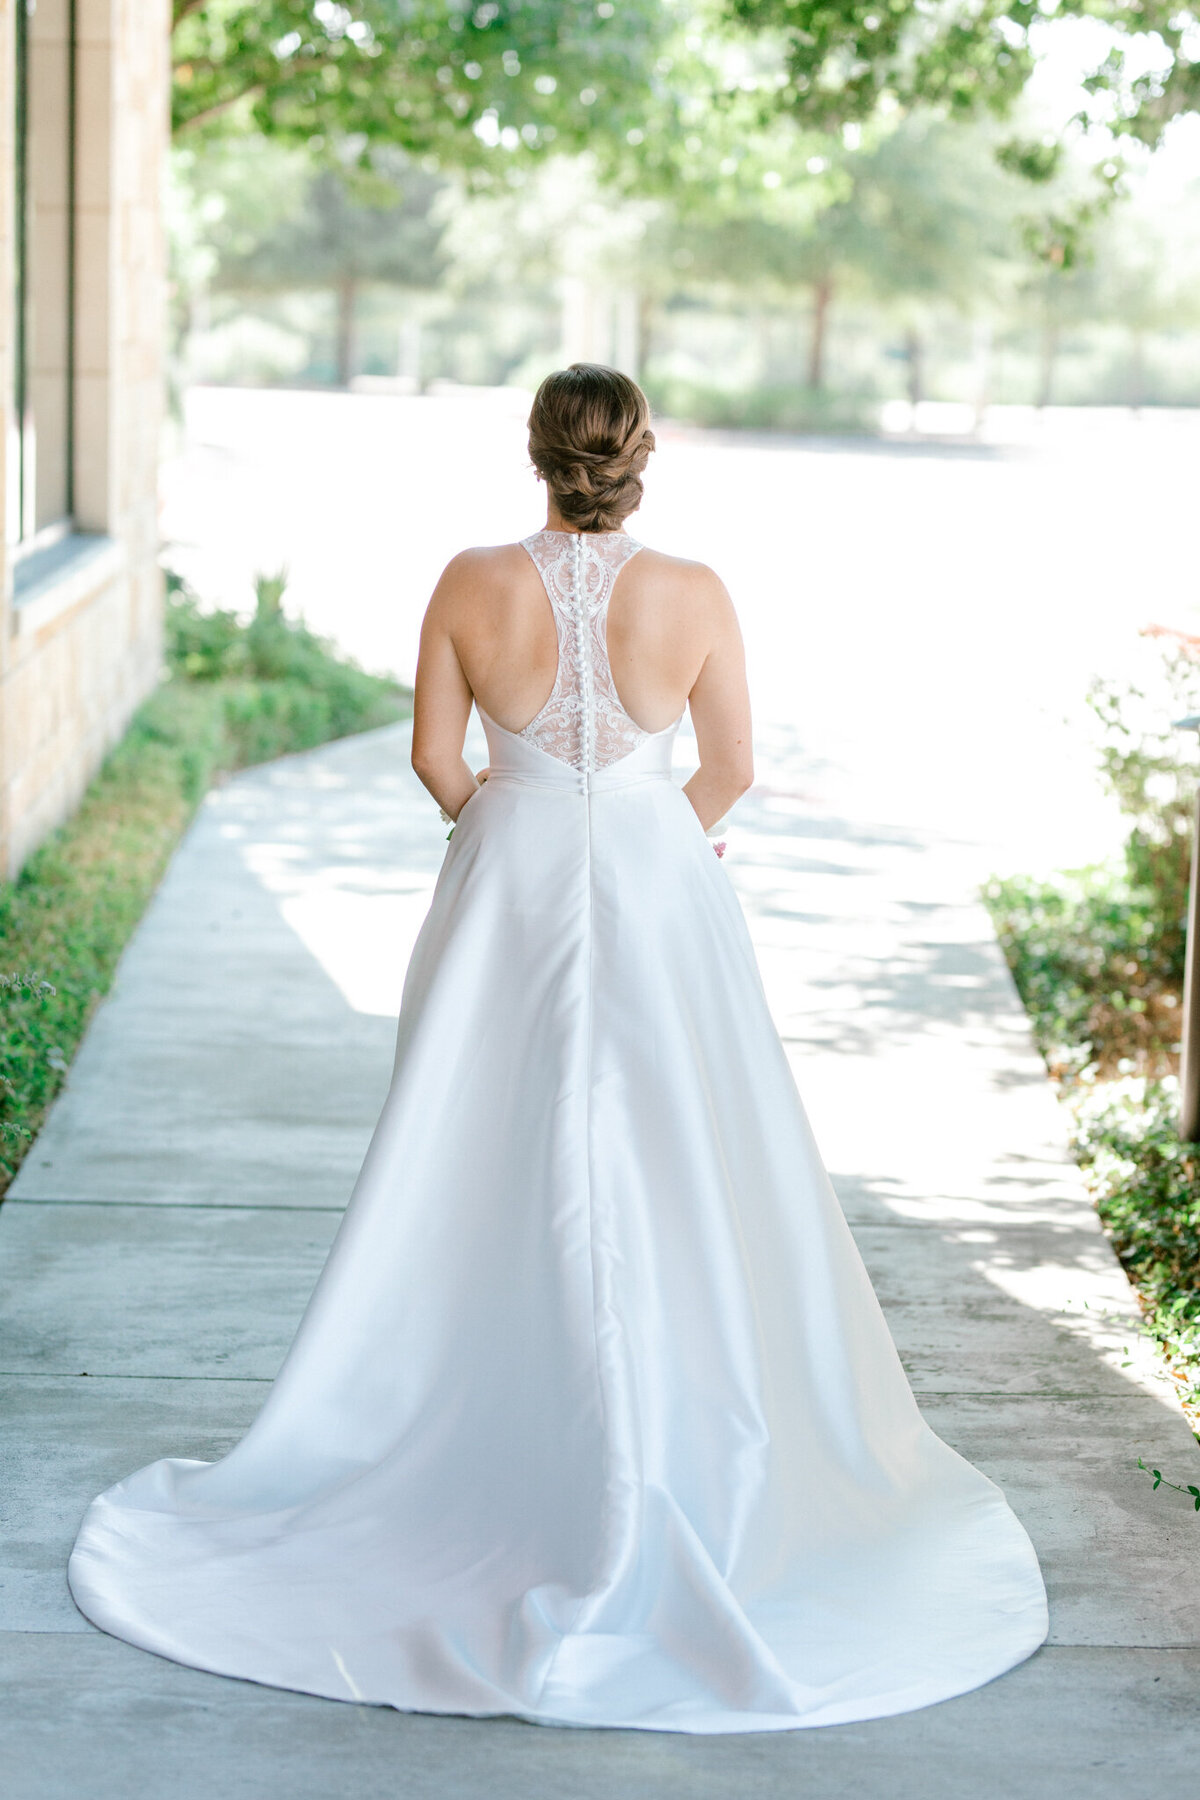 Kaylee & Michael's Wedding at Watermark Community Church | Dallas Wedding Photographer | Sami Kathryn Photography-52